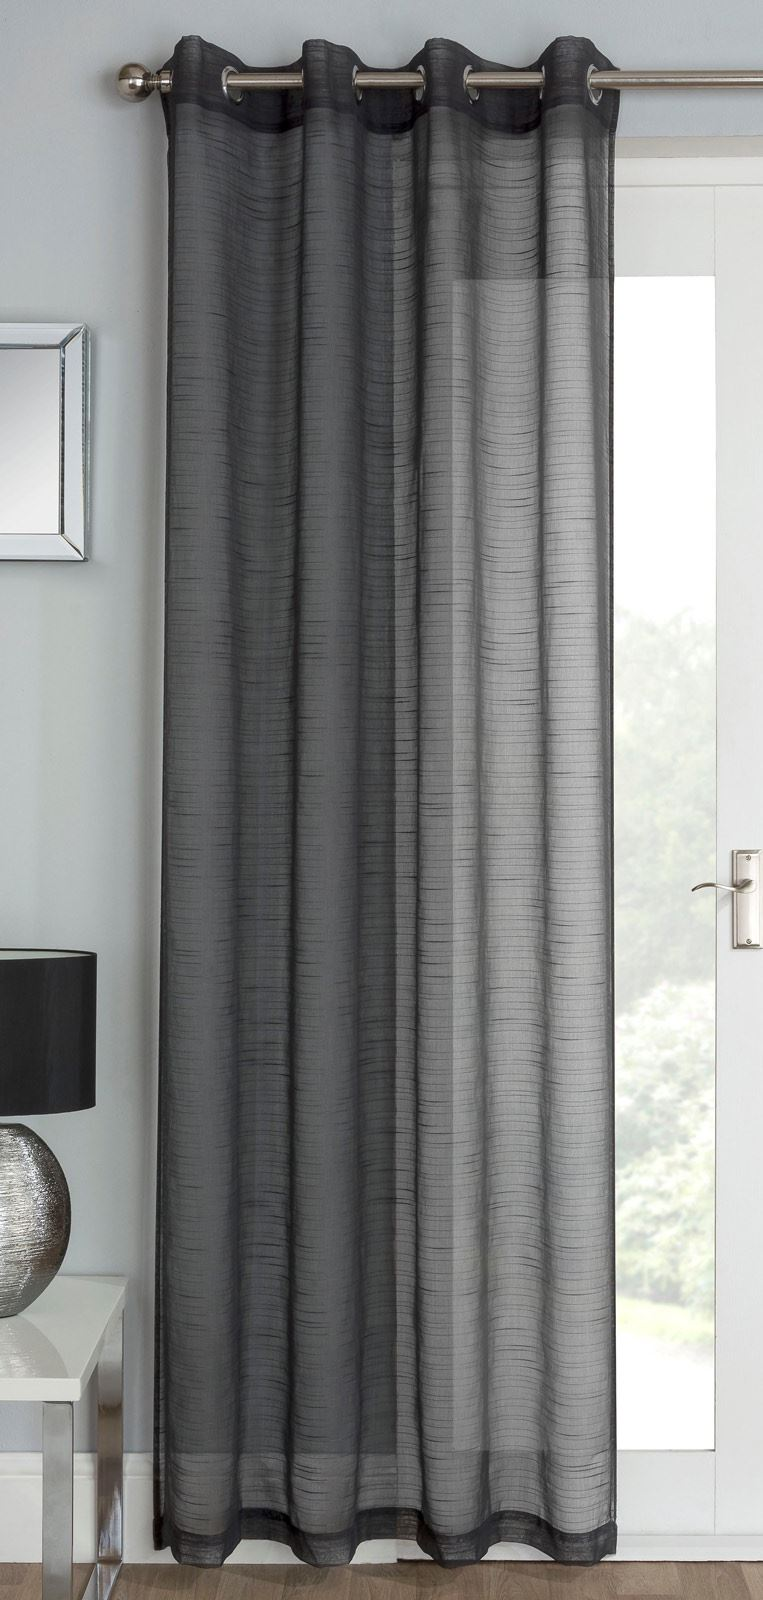 silver grey white voile eyelet curtains ring top sparkle. Black Bedroom Furniture Sets. Home Design Ideas